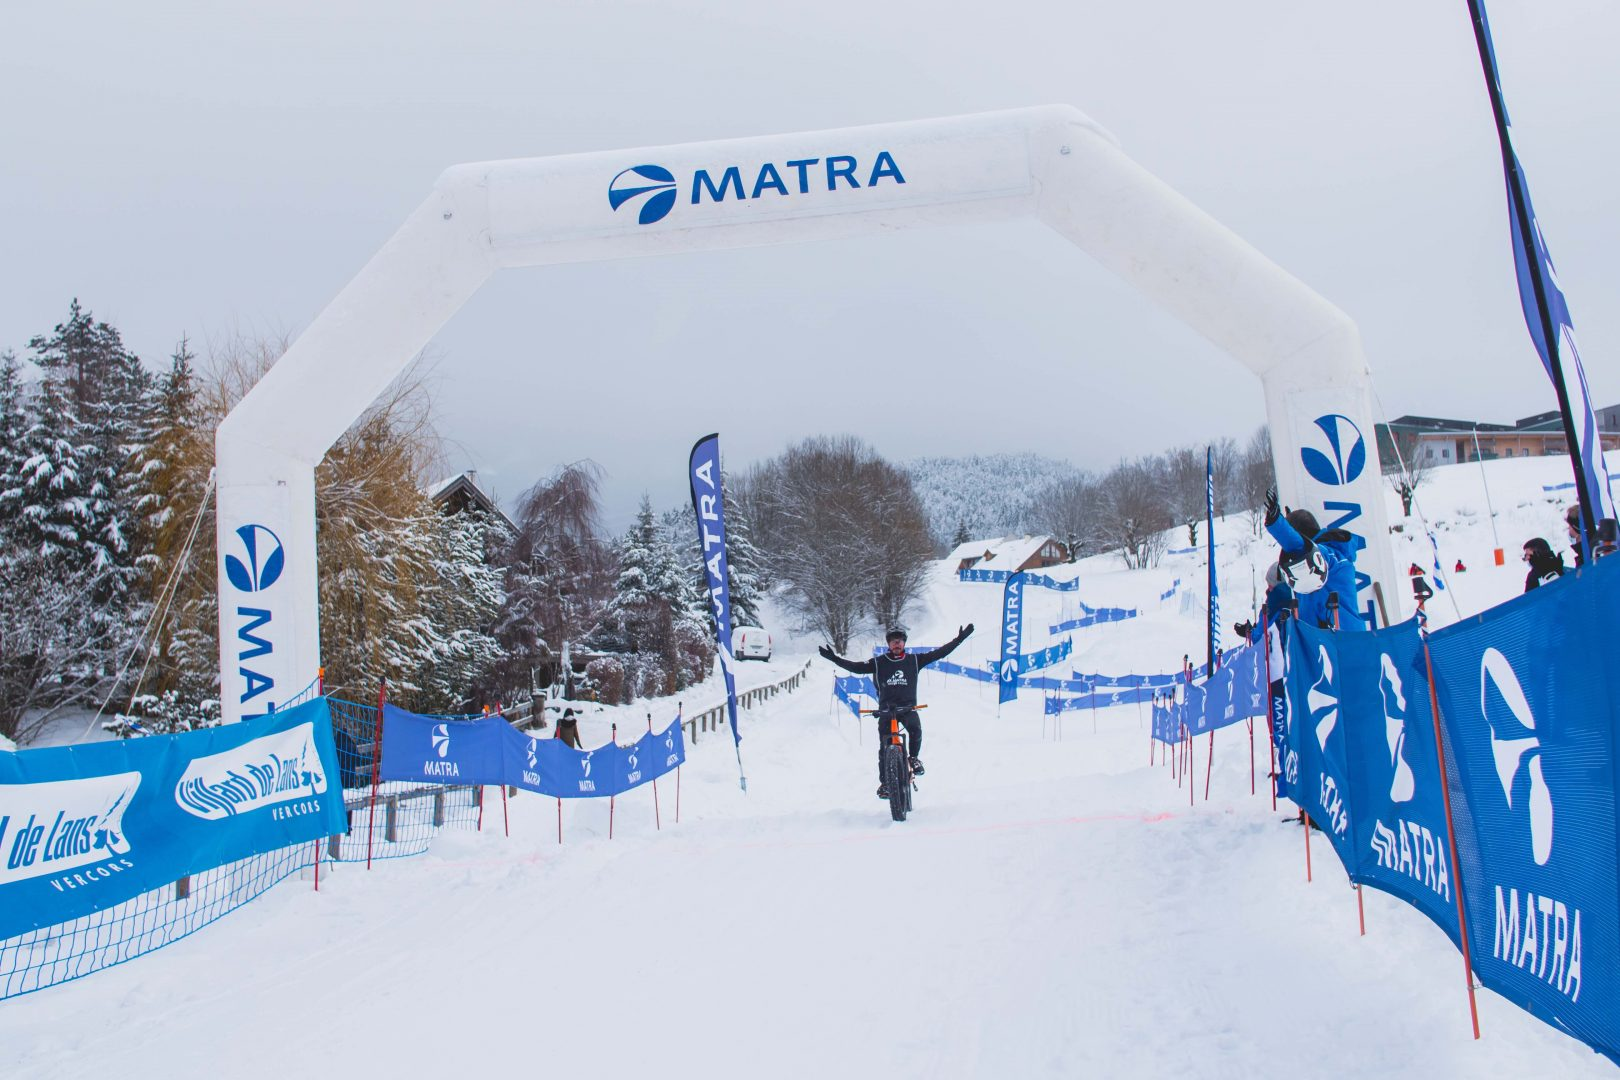 matra snow cross villard de lans